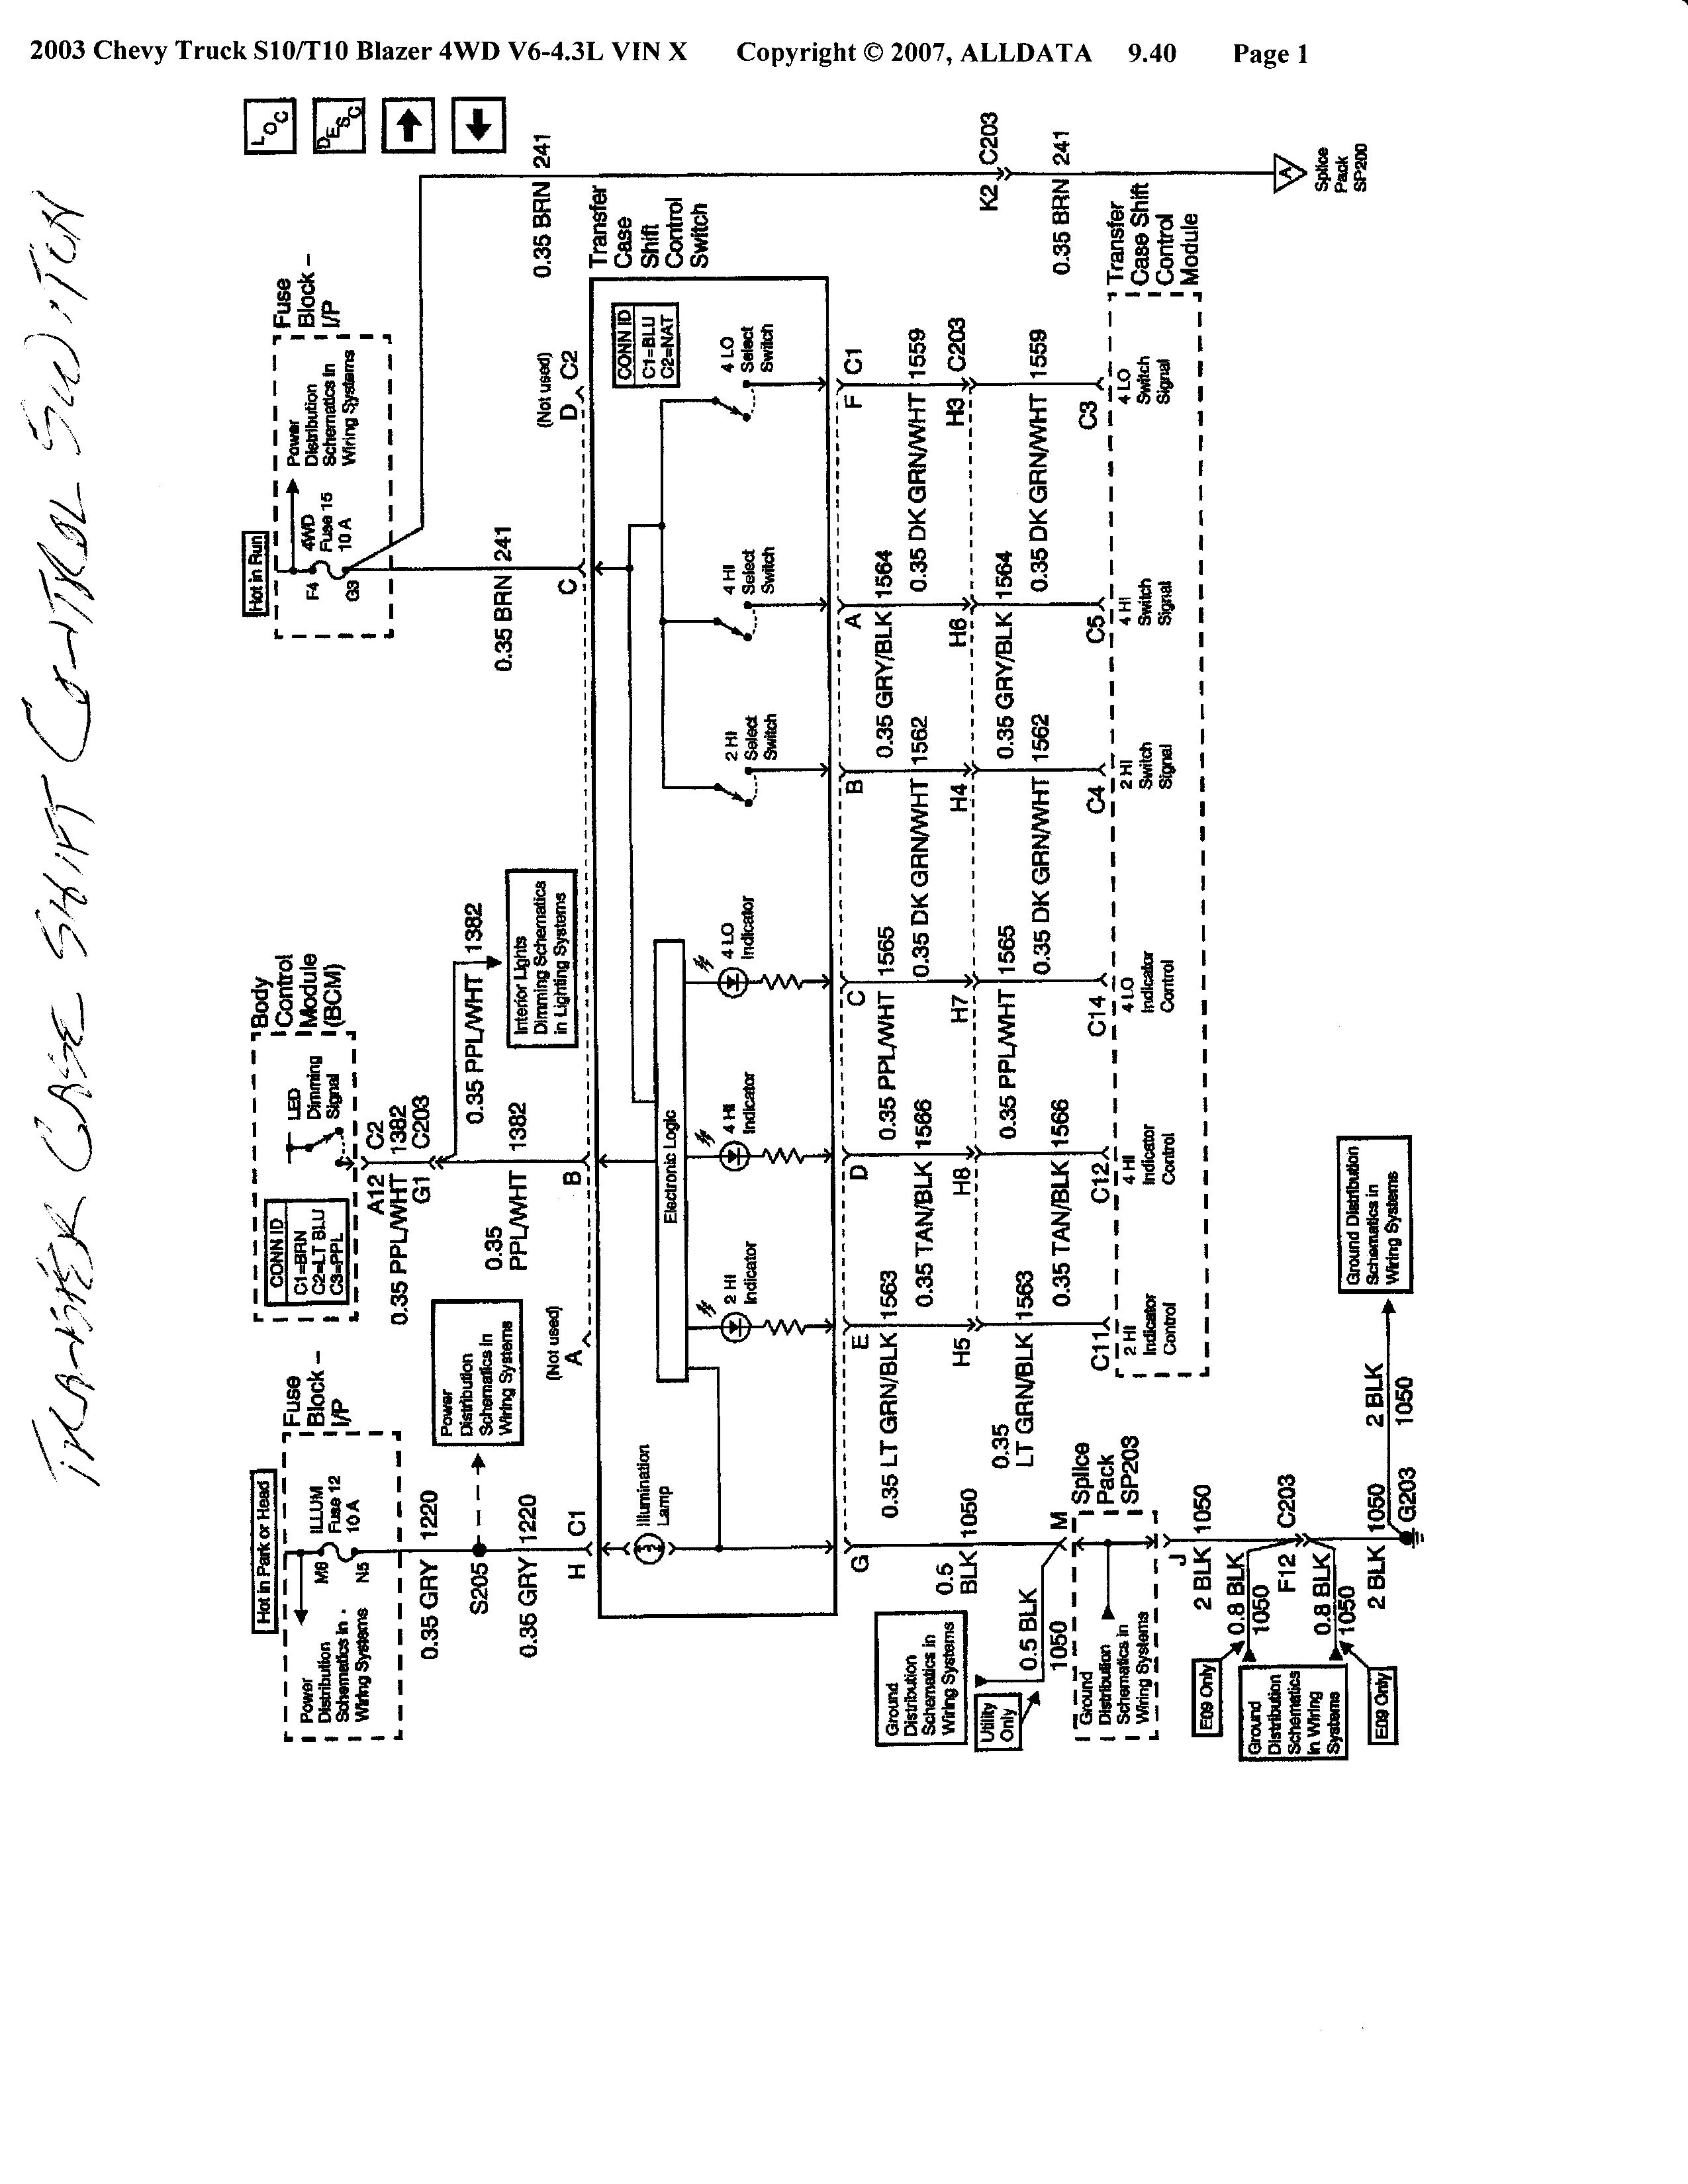 2000 blazer 4x4 wiring diagram simple wiring diagram 2001 chevy blazer  engine diagram 1992 chevy s10